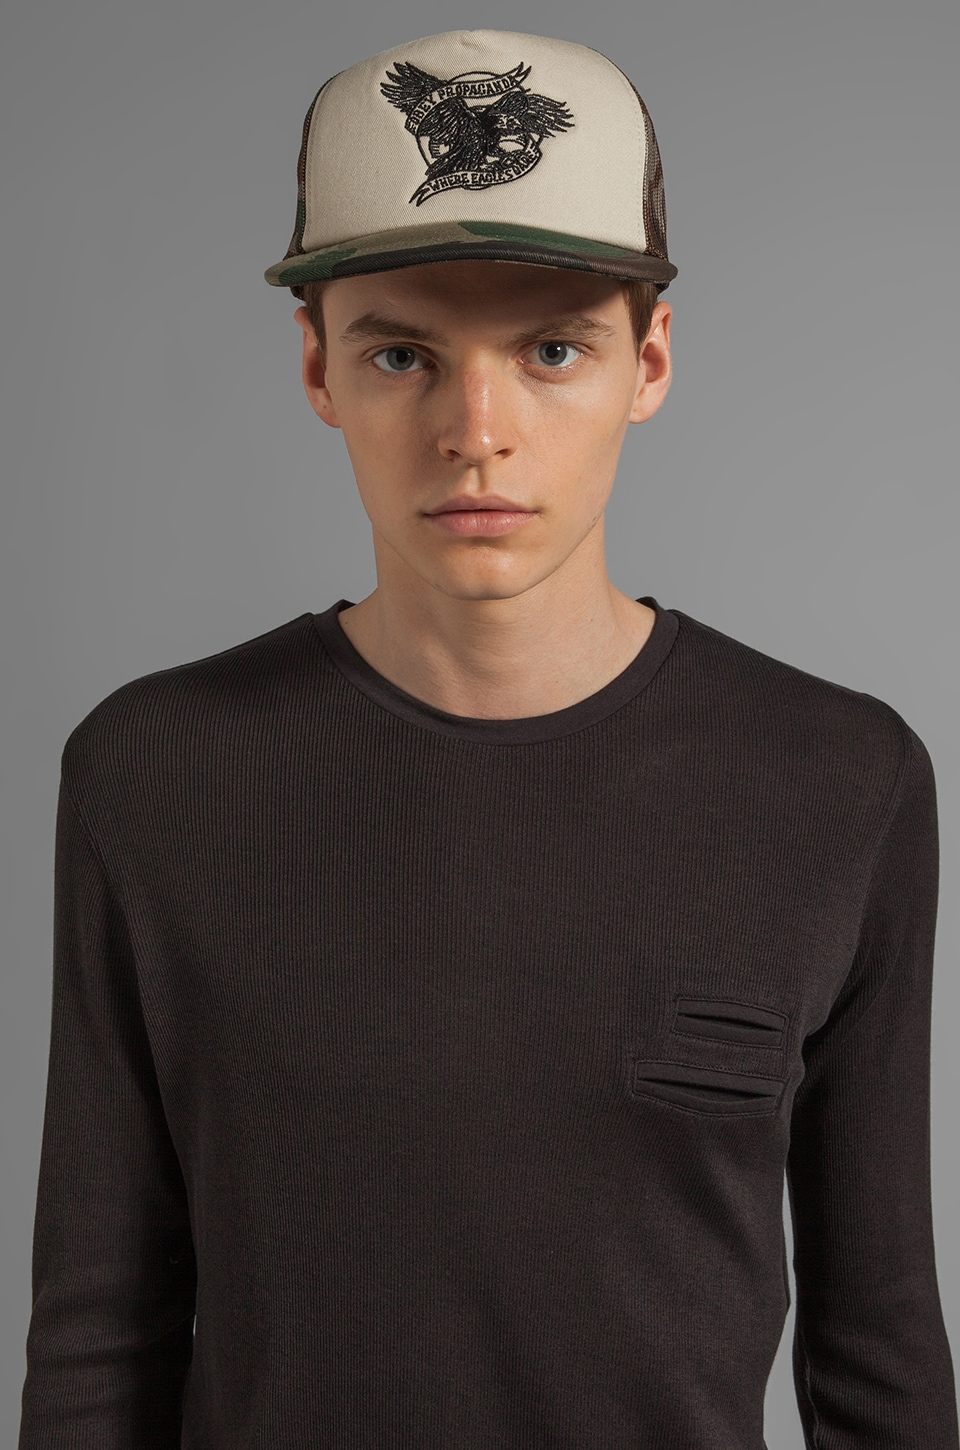 Obey Baldy Trucker Hat in Khaki/ Camo